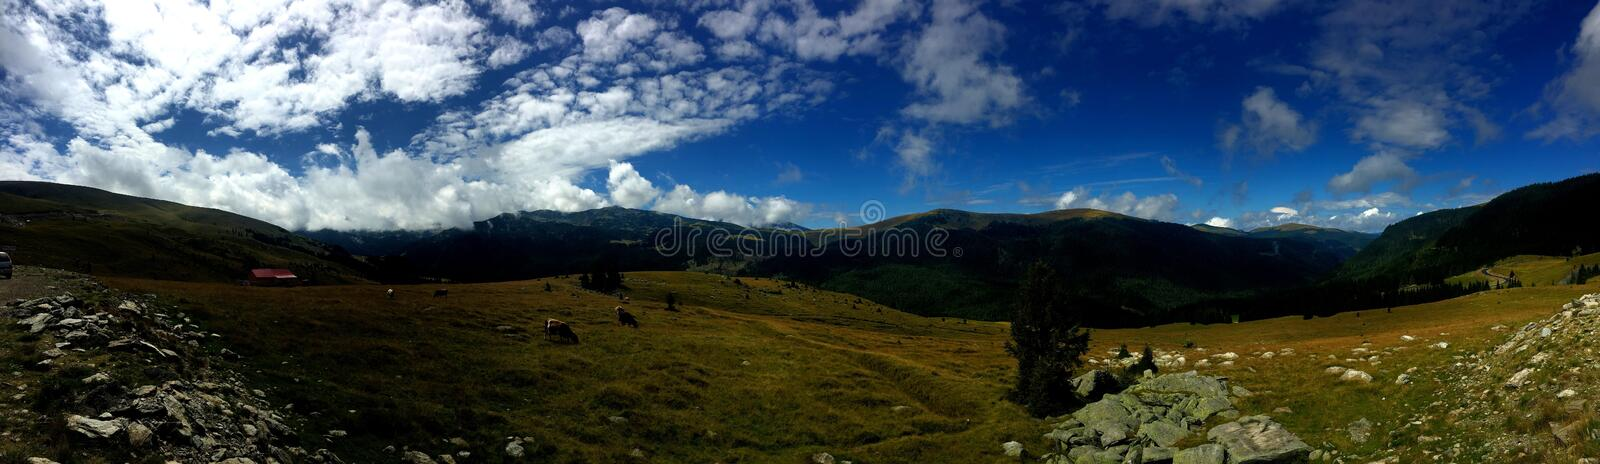 Route de Transalpina, Roumanie image stock